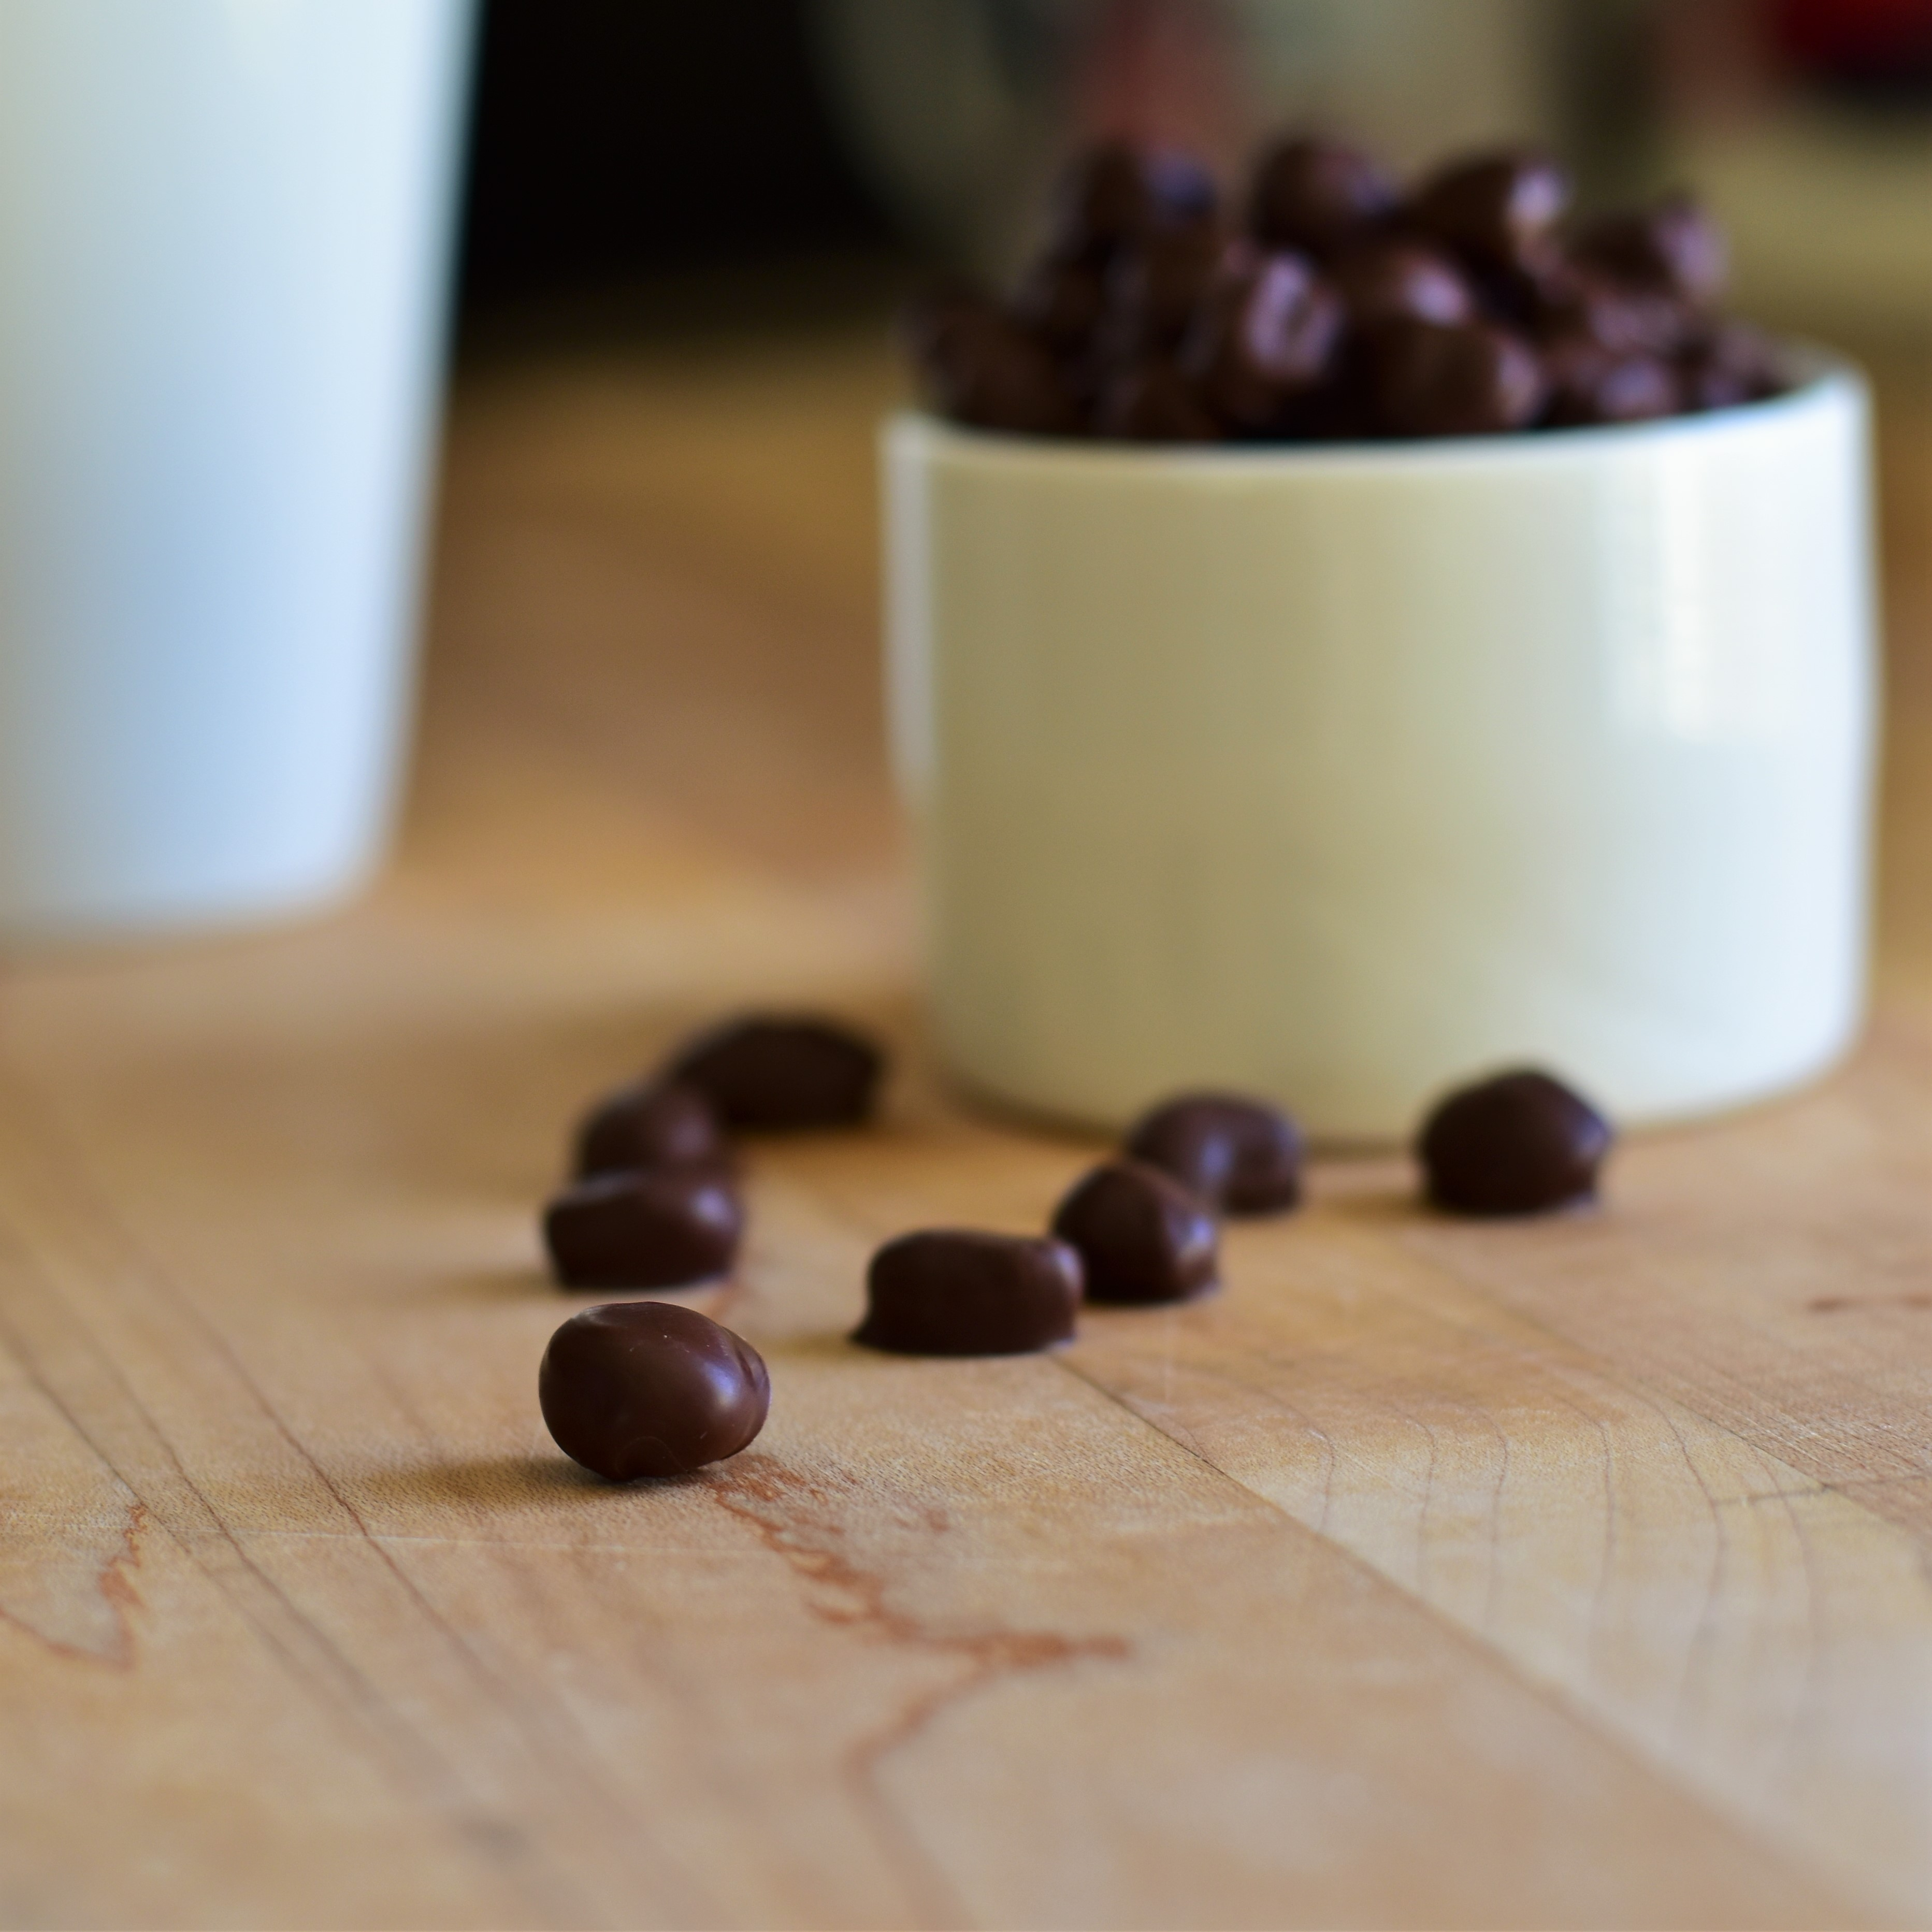 Chocolate-Covered Coffee Beans image